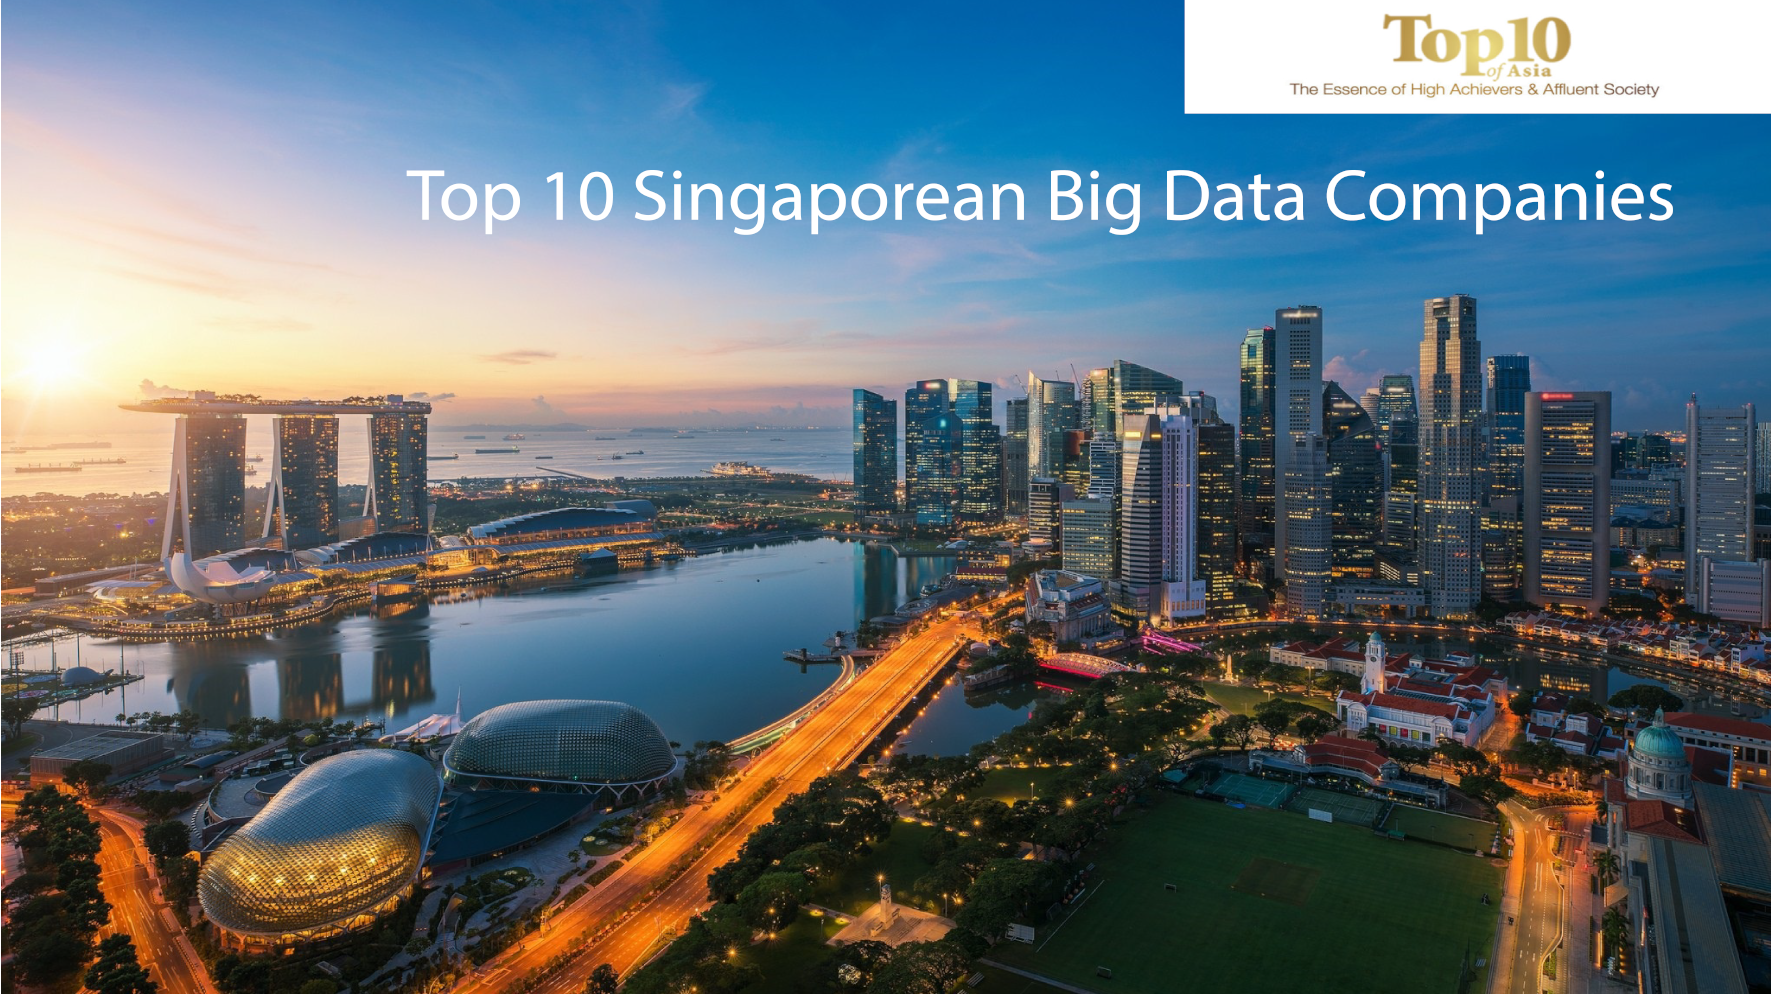 Lynx Analytics named as the Top 10 Data Analytics Companies in Asia